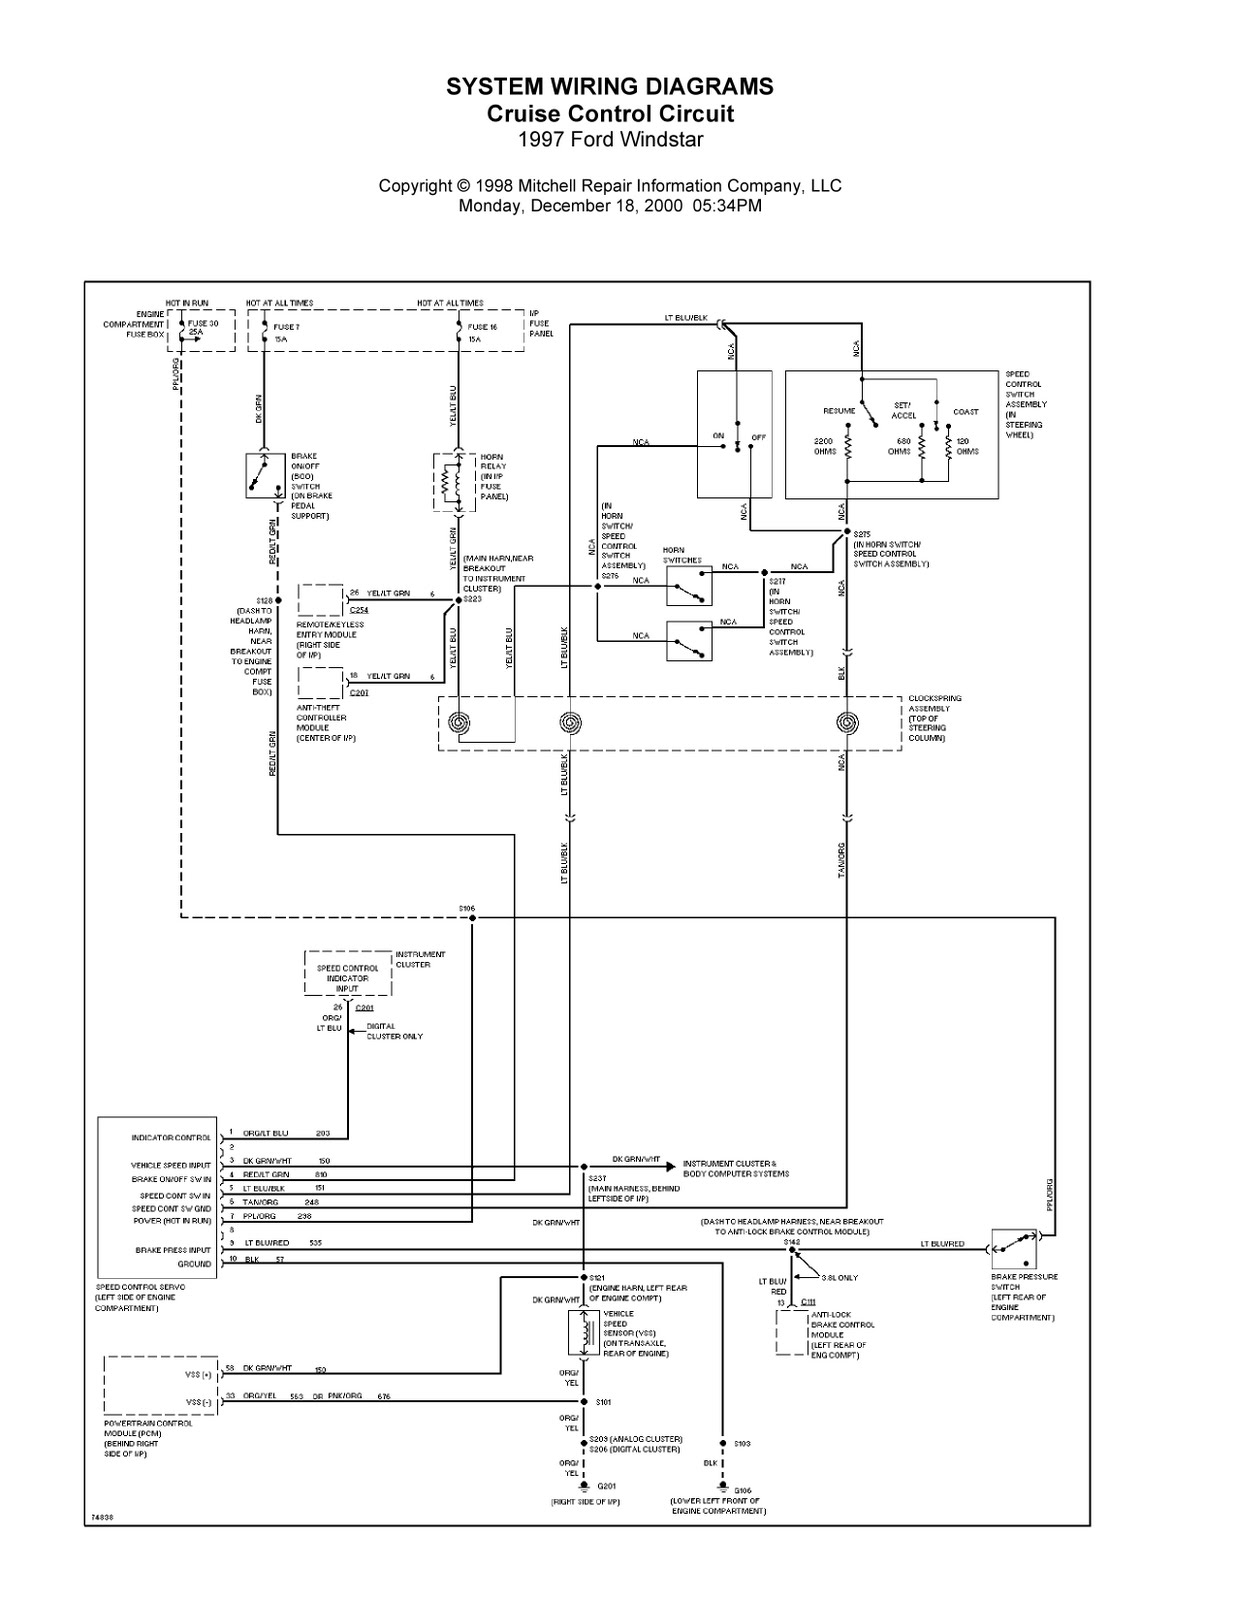 1996 windstar ac wire diagram ac wire diagram 8335b671 1997 ford windstar complete system wiring diagrams ...